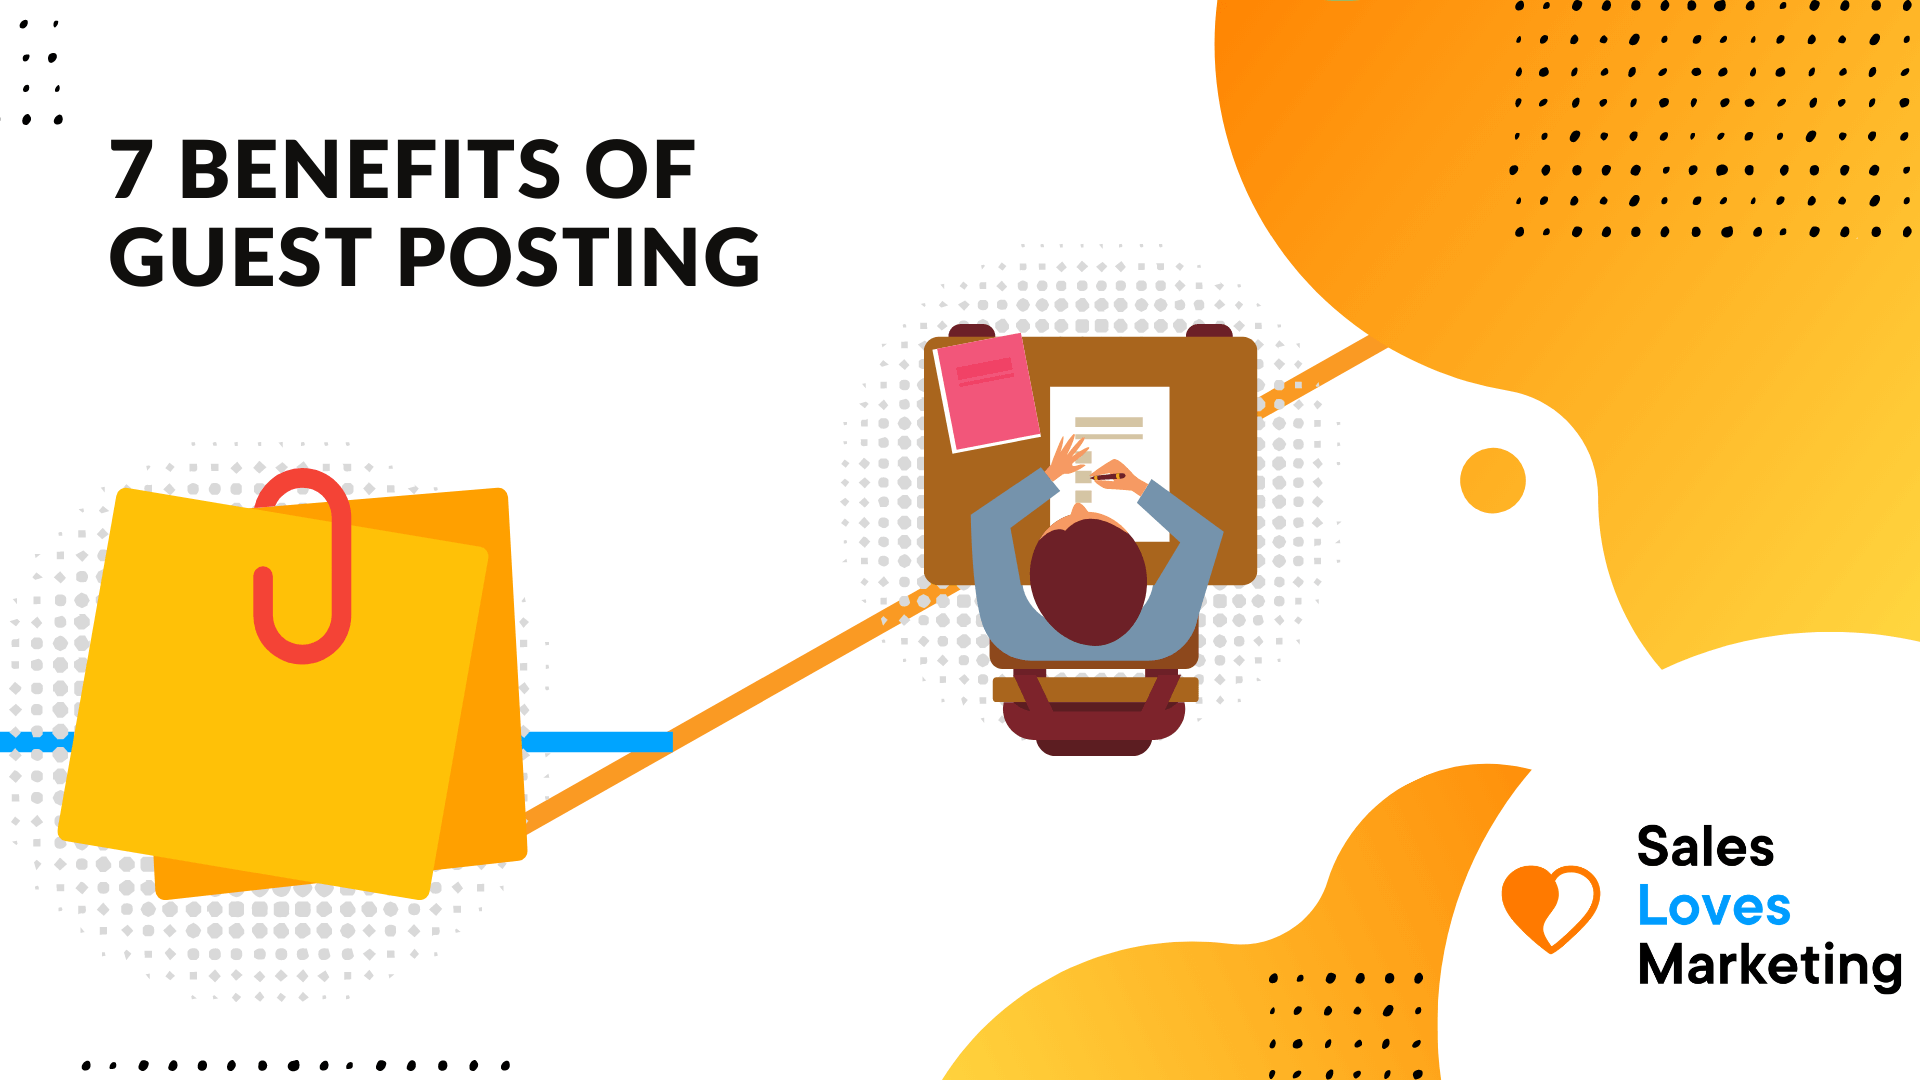 Learn everything you need to know about guest posting your content.